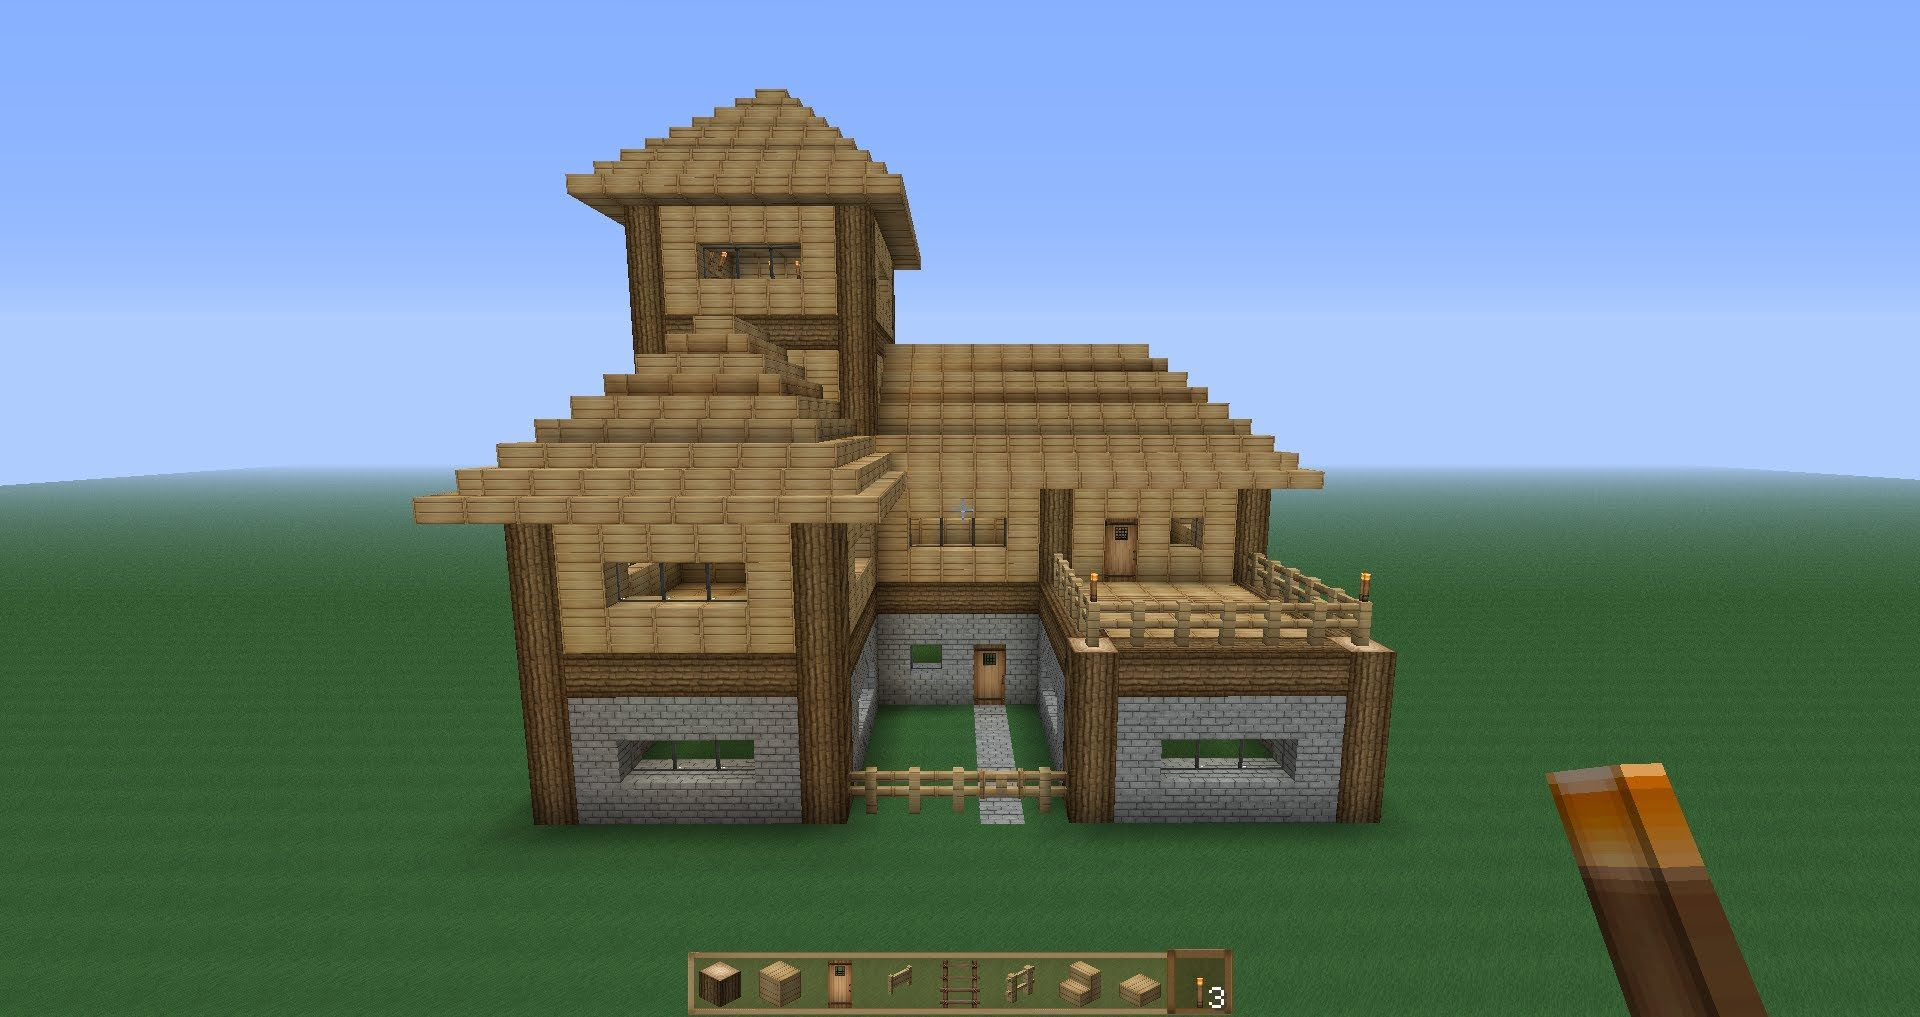 minecraft house designs survival mode with 66920744437393899 on 288612 Floor Designs For Bases besides Minecraft House Inside Ideas additionally 2145784 Forest Cottage Tutorial moreover Cloud Like Minecraft likewise 286756 Your Storage Room Designs.